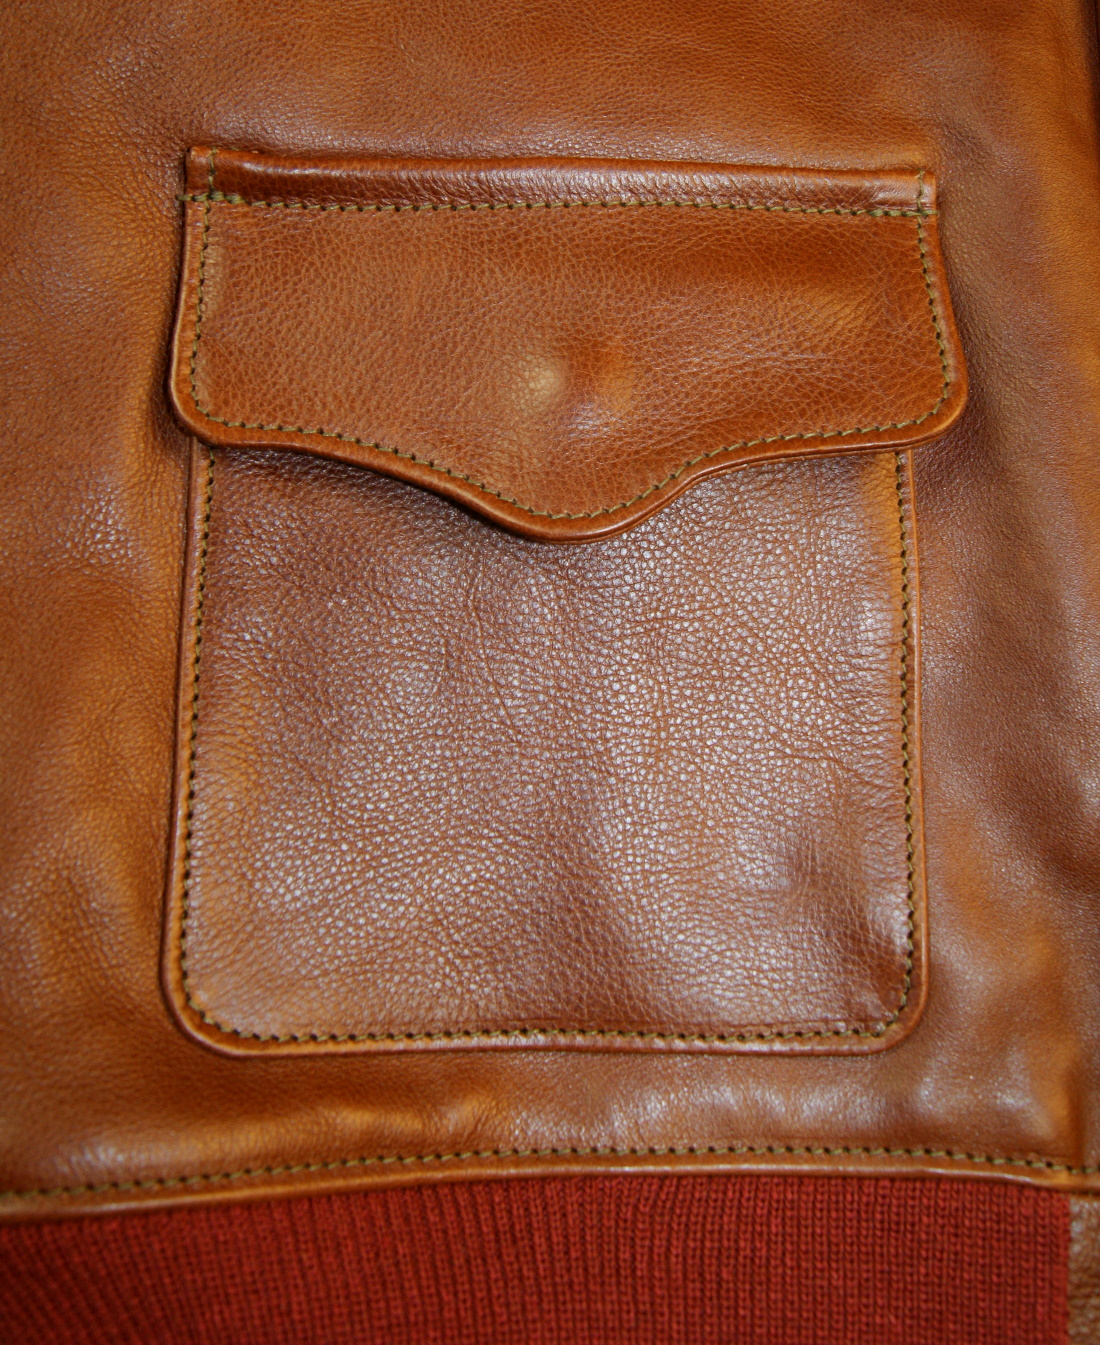 Aero 38-1711 A-2 Russet Vicenza Horsehide patch pocket.jpg